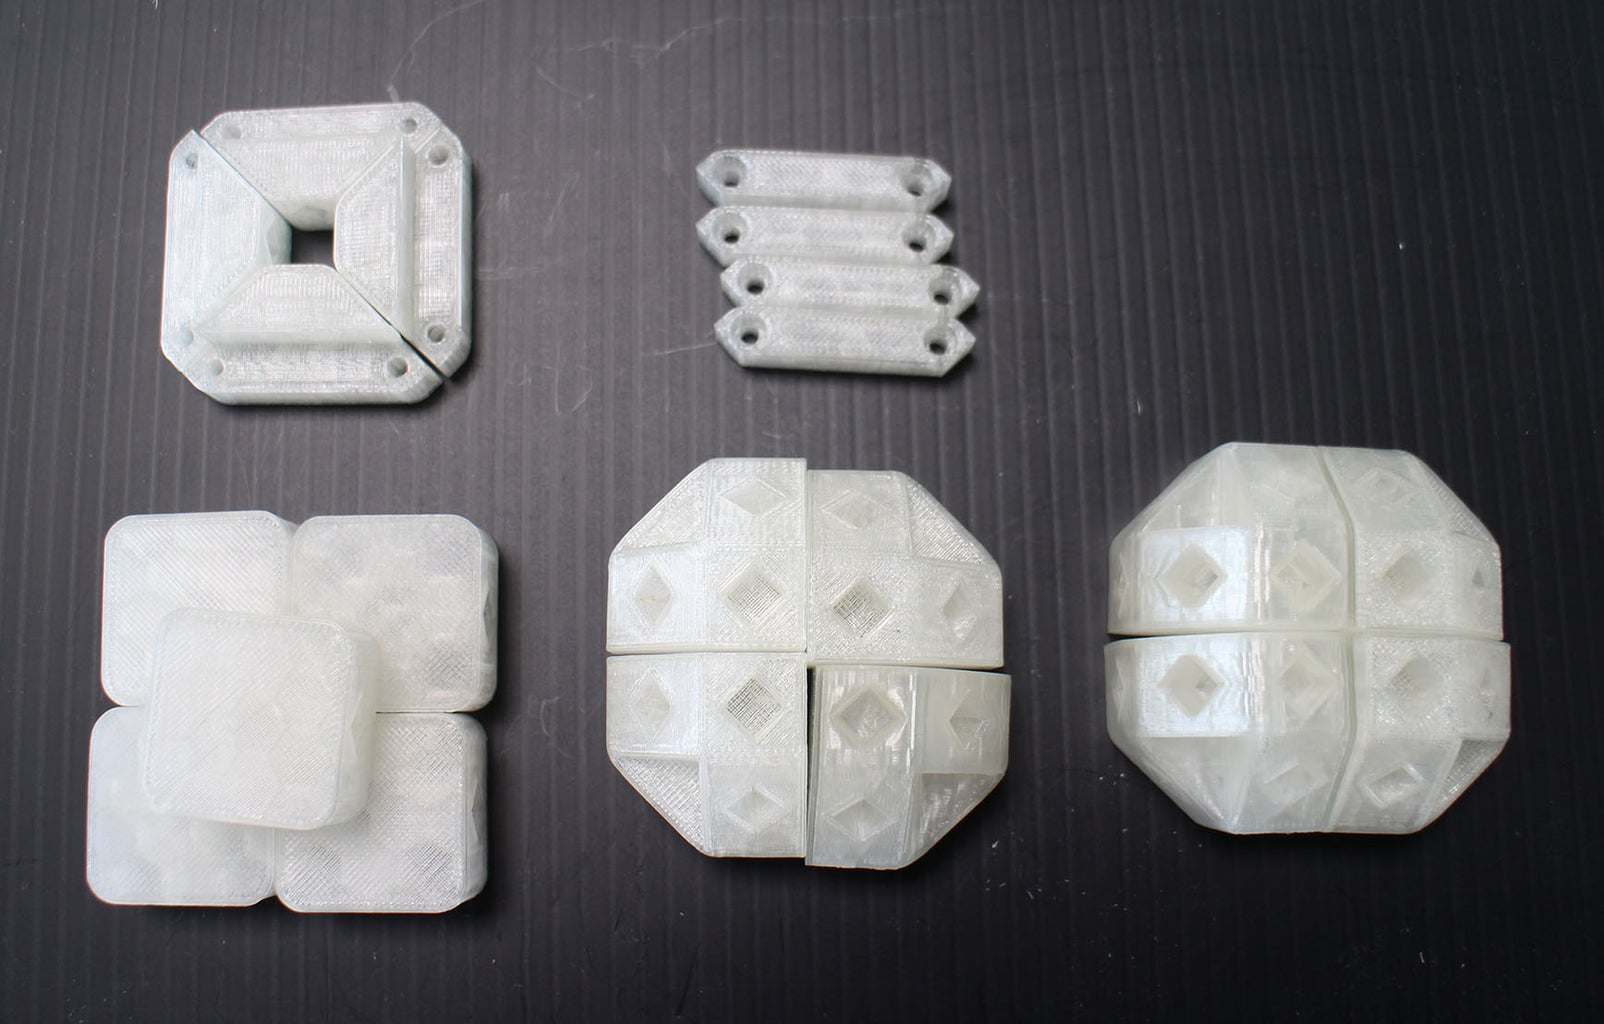 Assembly: Print Parts